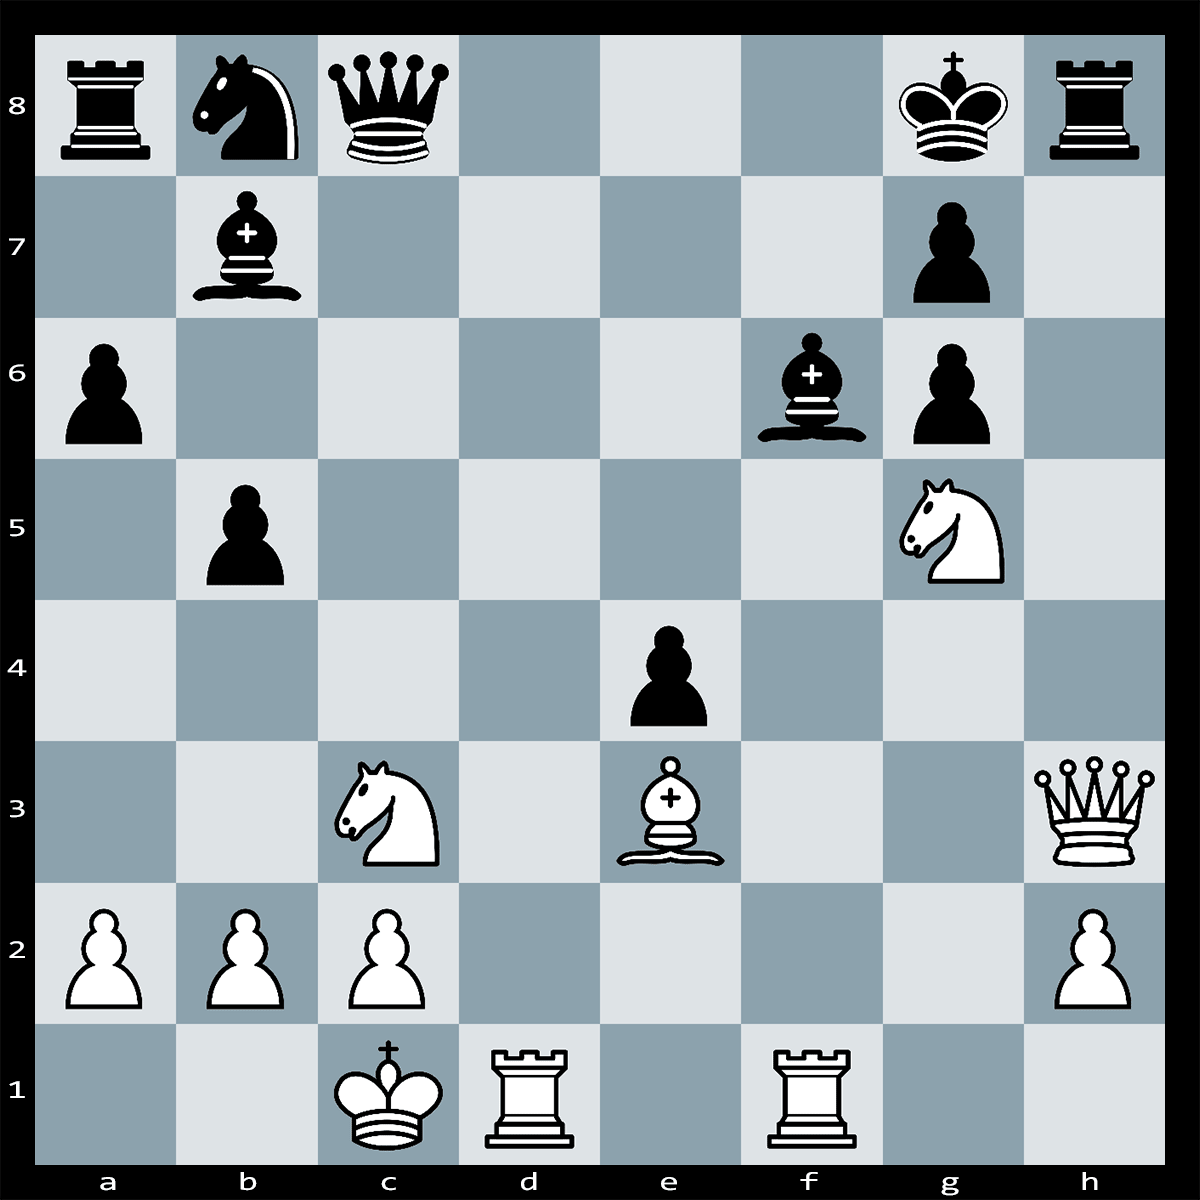 Chess Puzzle #305 | White has a powerful move here, which wins the game. Can you spot it?